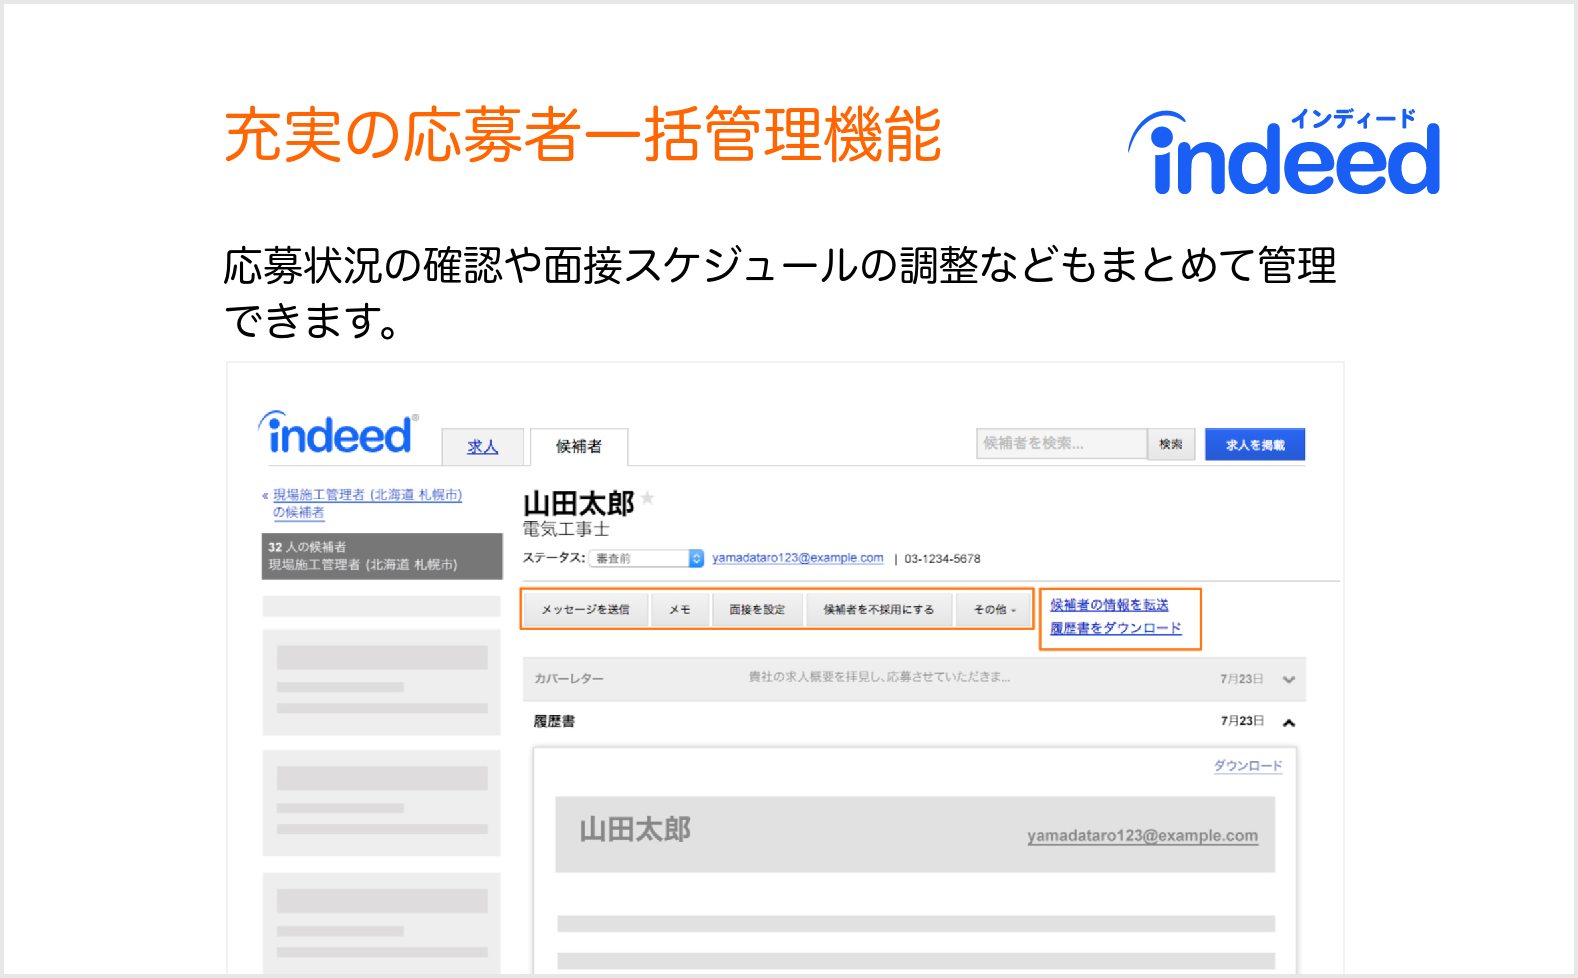 Indeedの説明画像